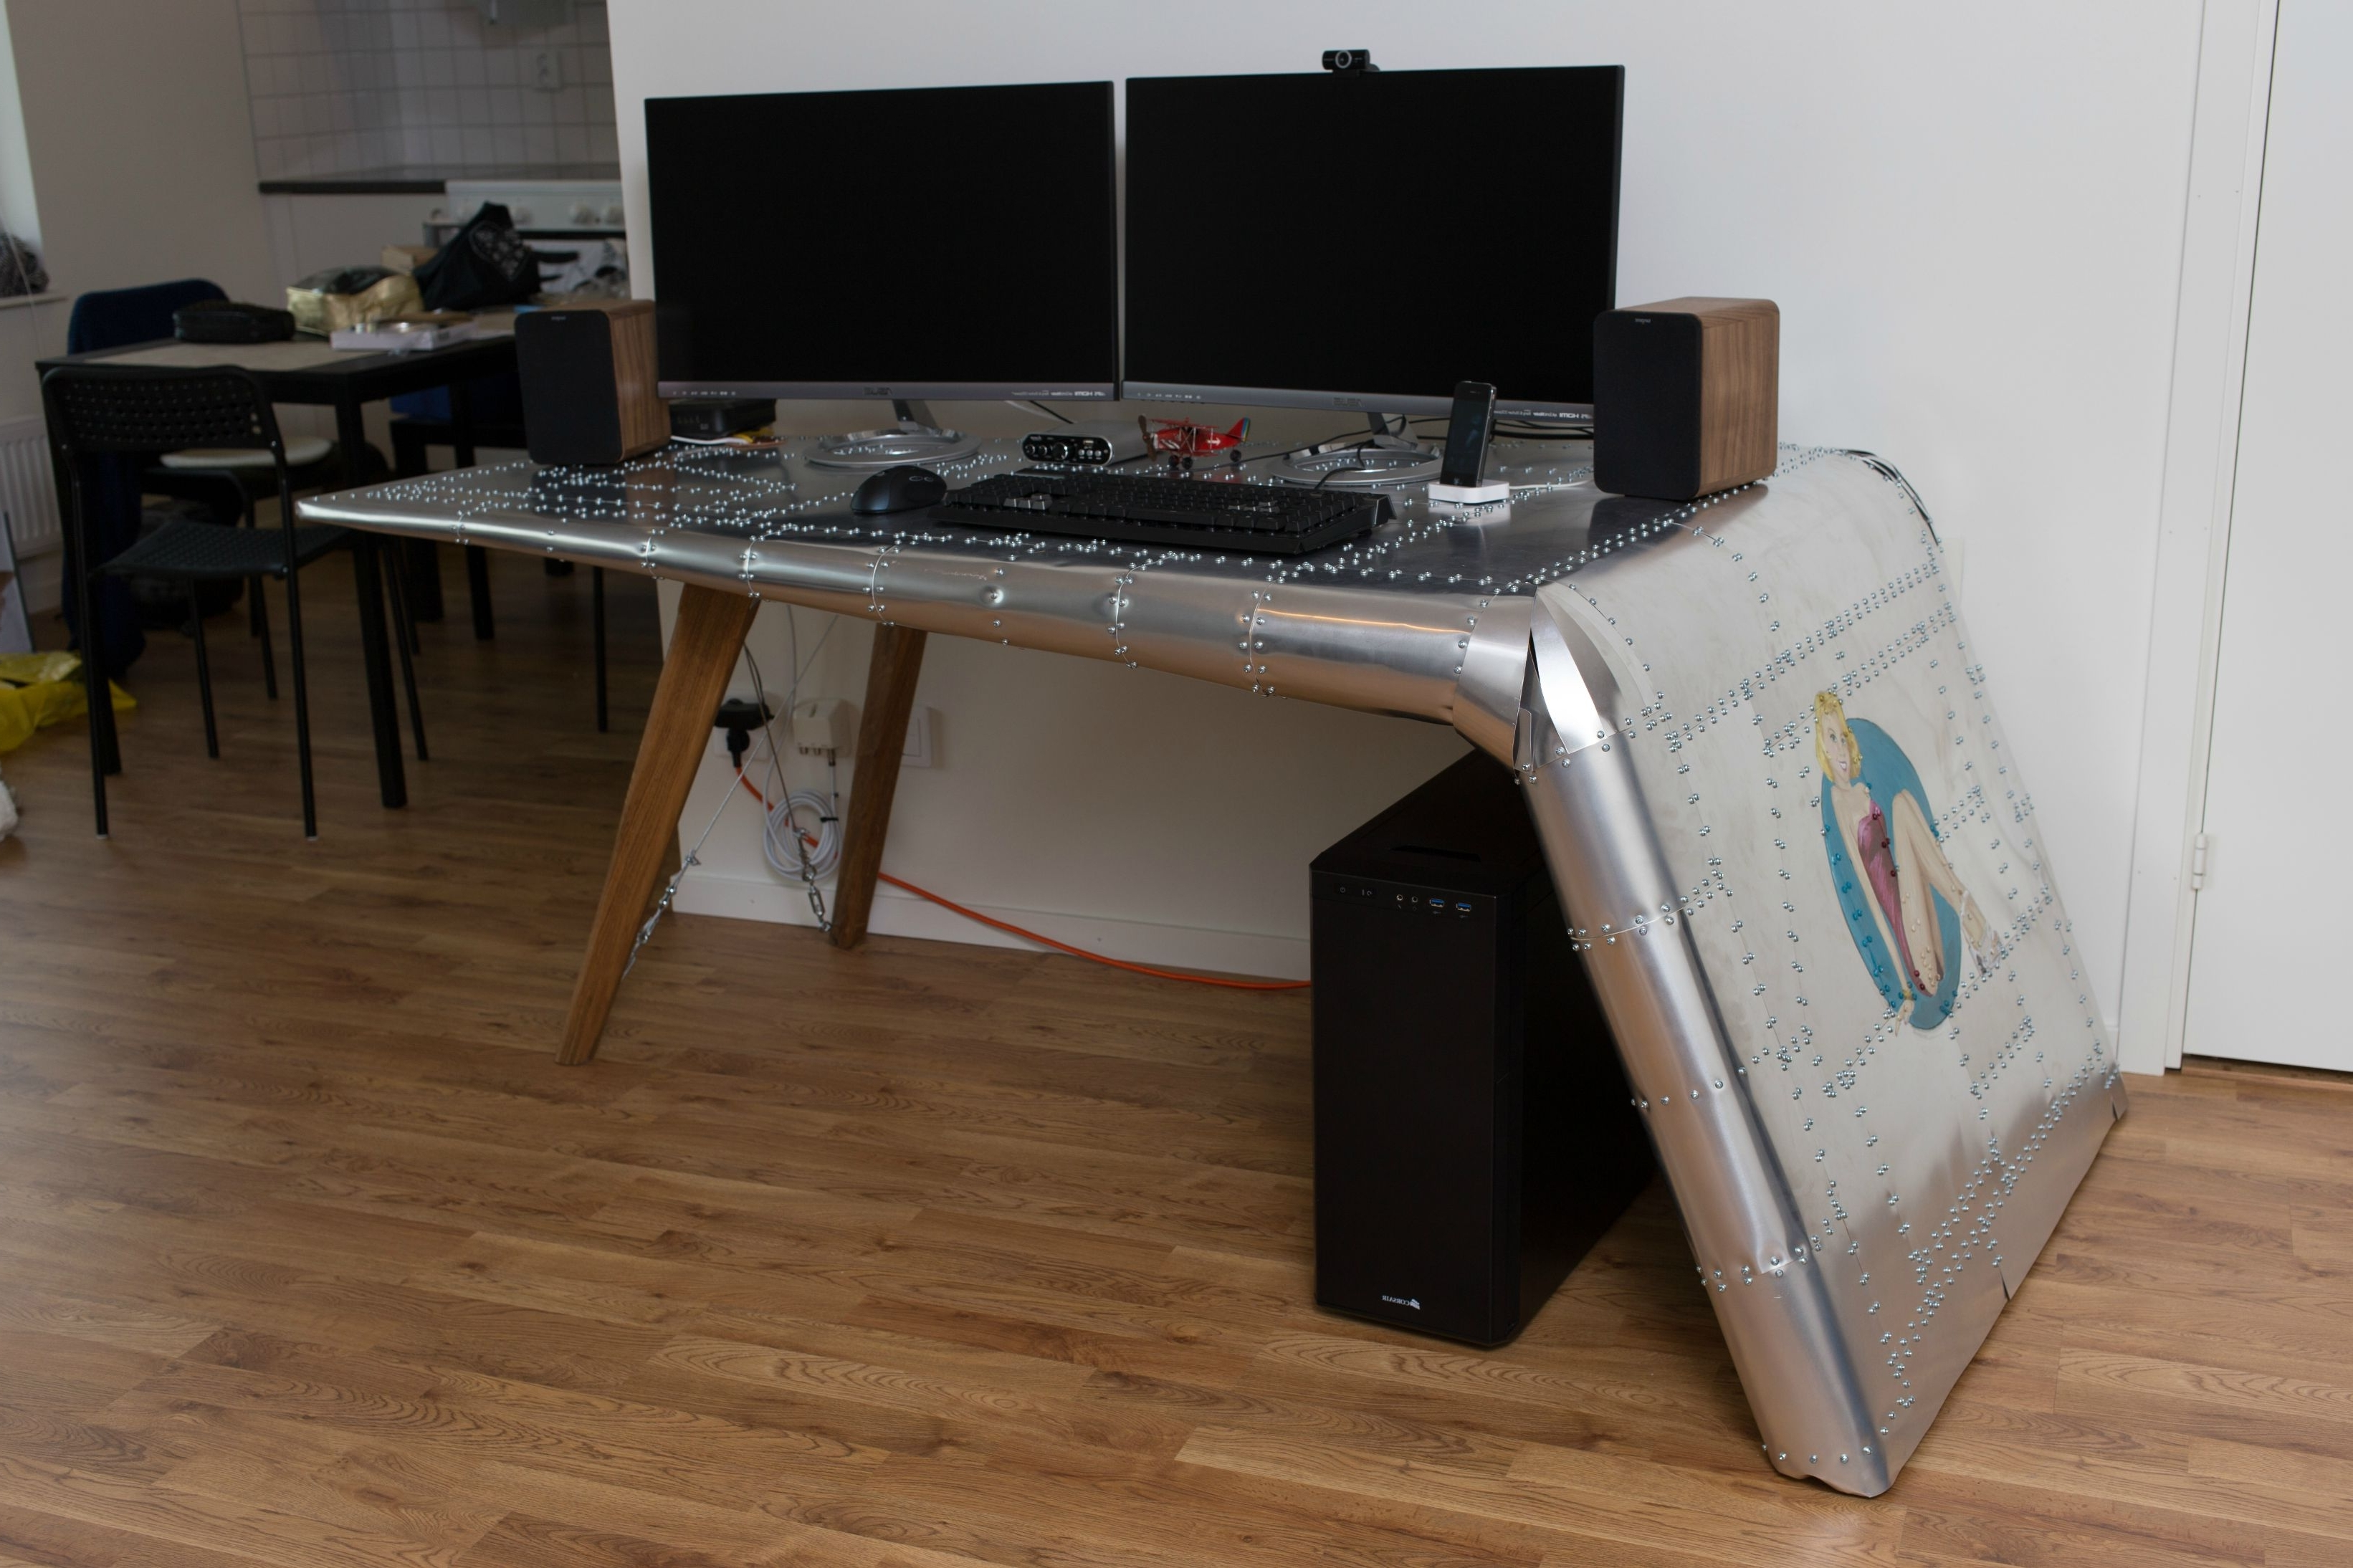 Computer Setup, Desks And Intended For Quirky Computer Desks (View 3 of 20)